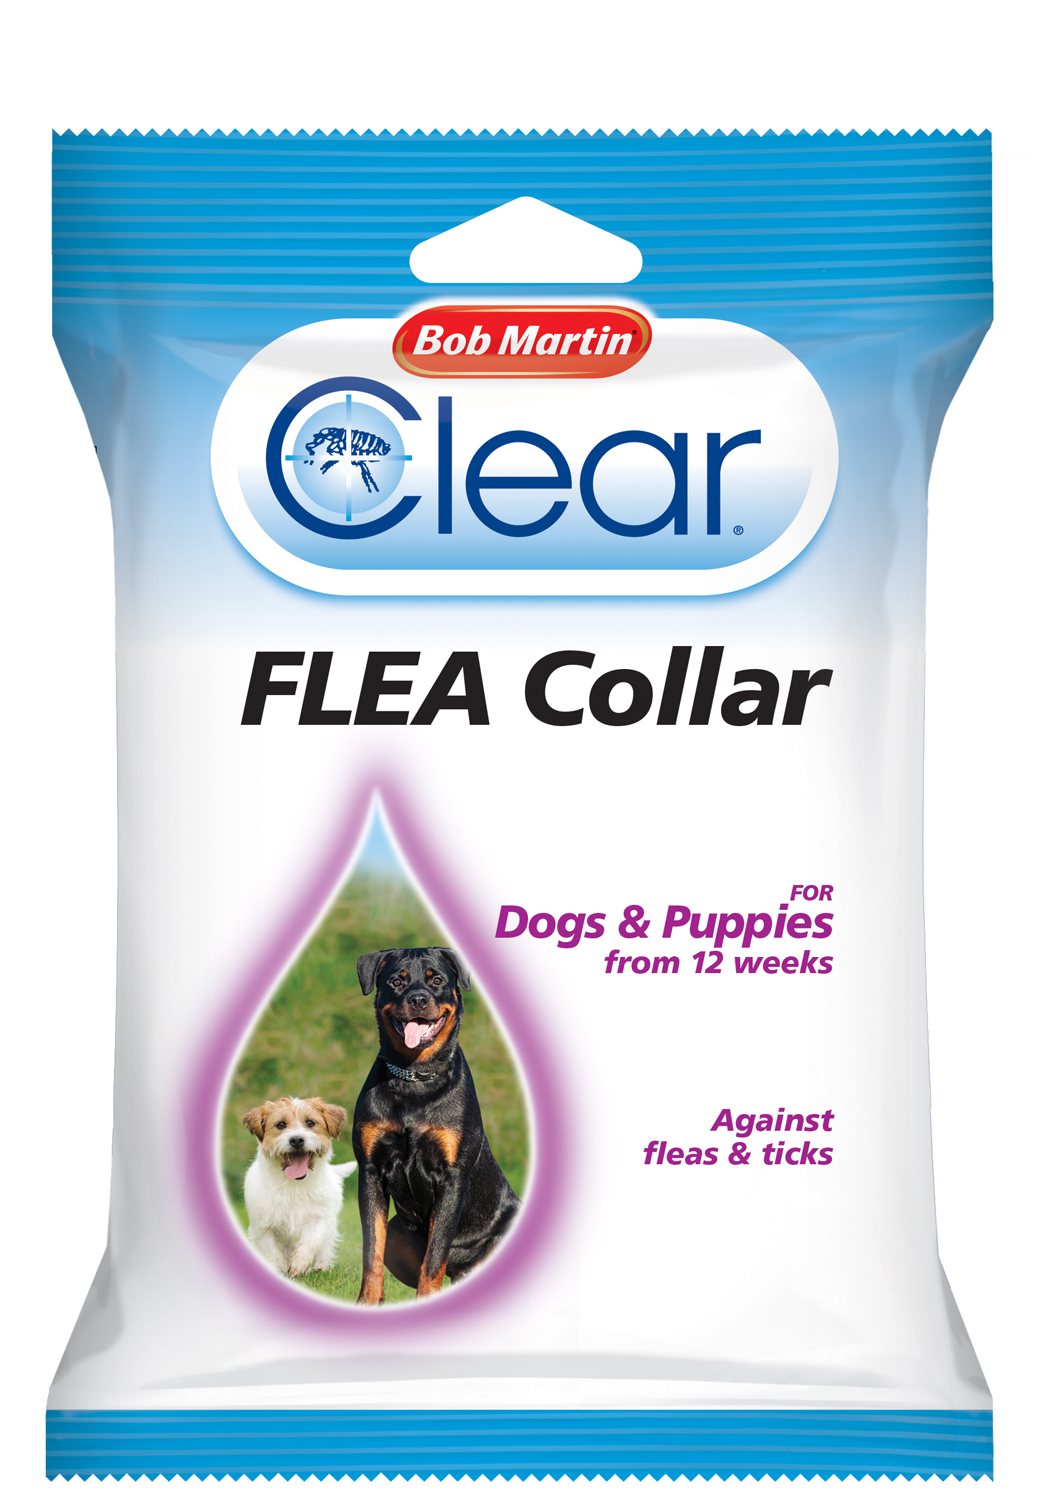 Bob Martin Clear Flea Collar for Dogs